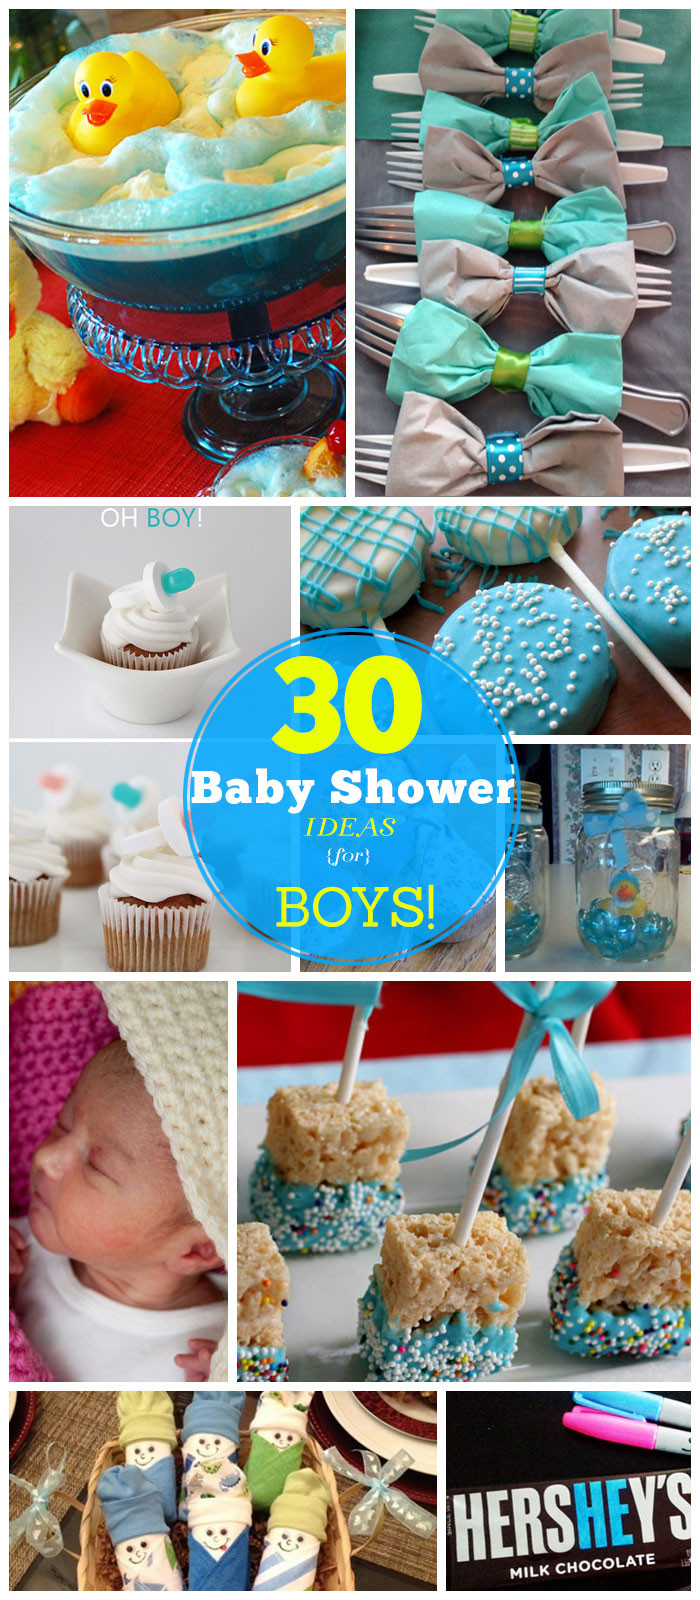 Best ideas about DIY Baby Shower Gifts For Boy . Save or Pin 21 DIY Baby Shower Ideas for Boys Now.